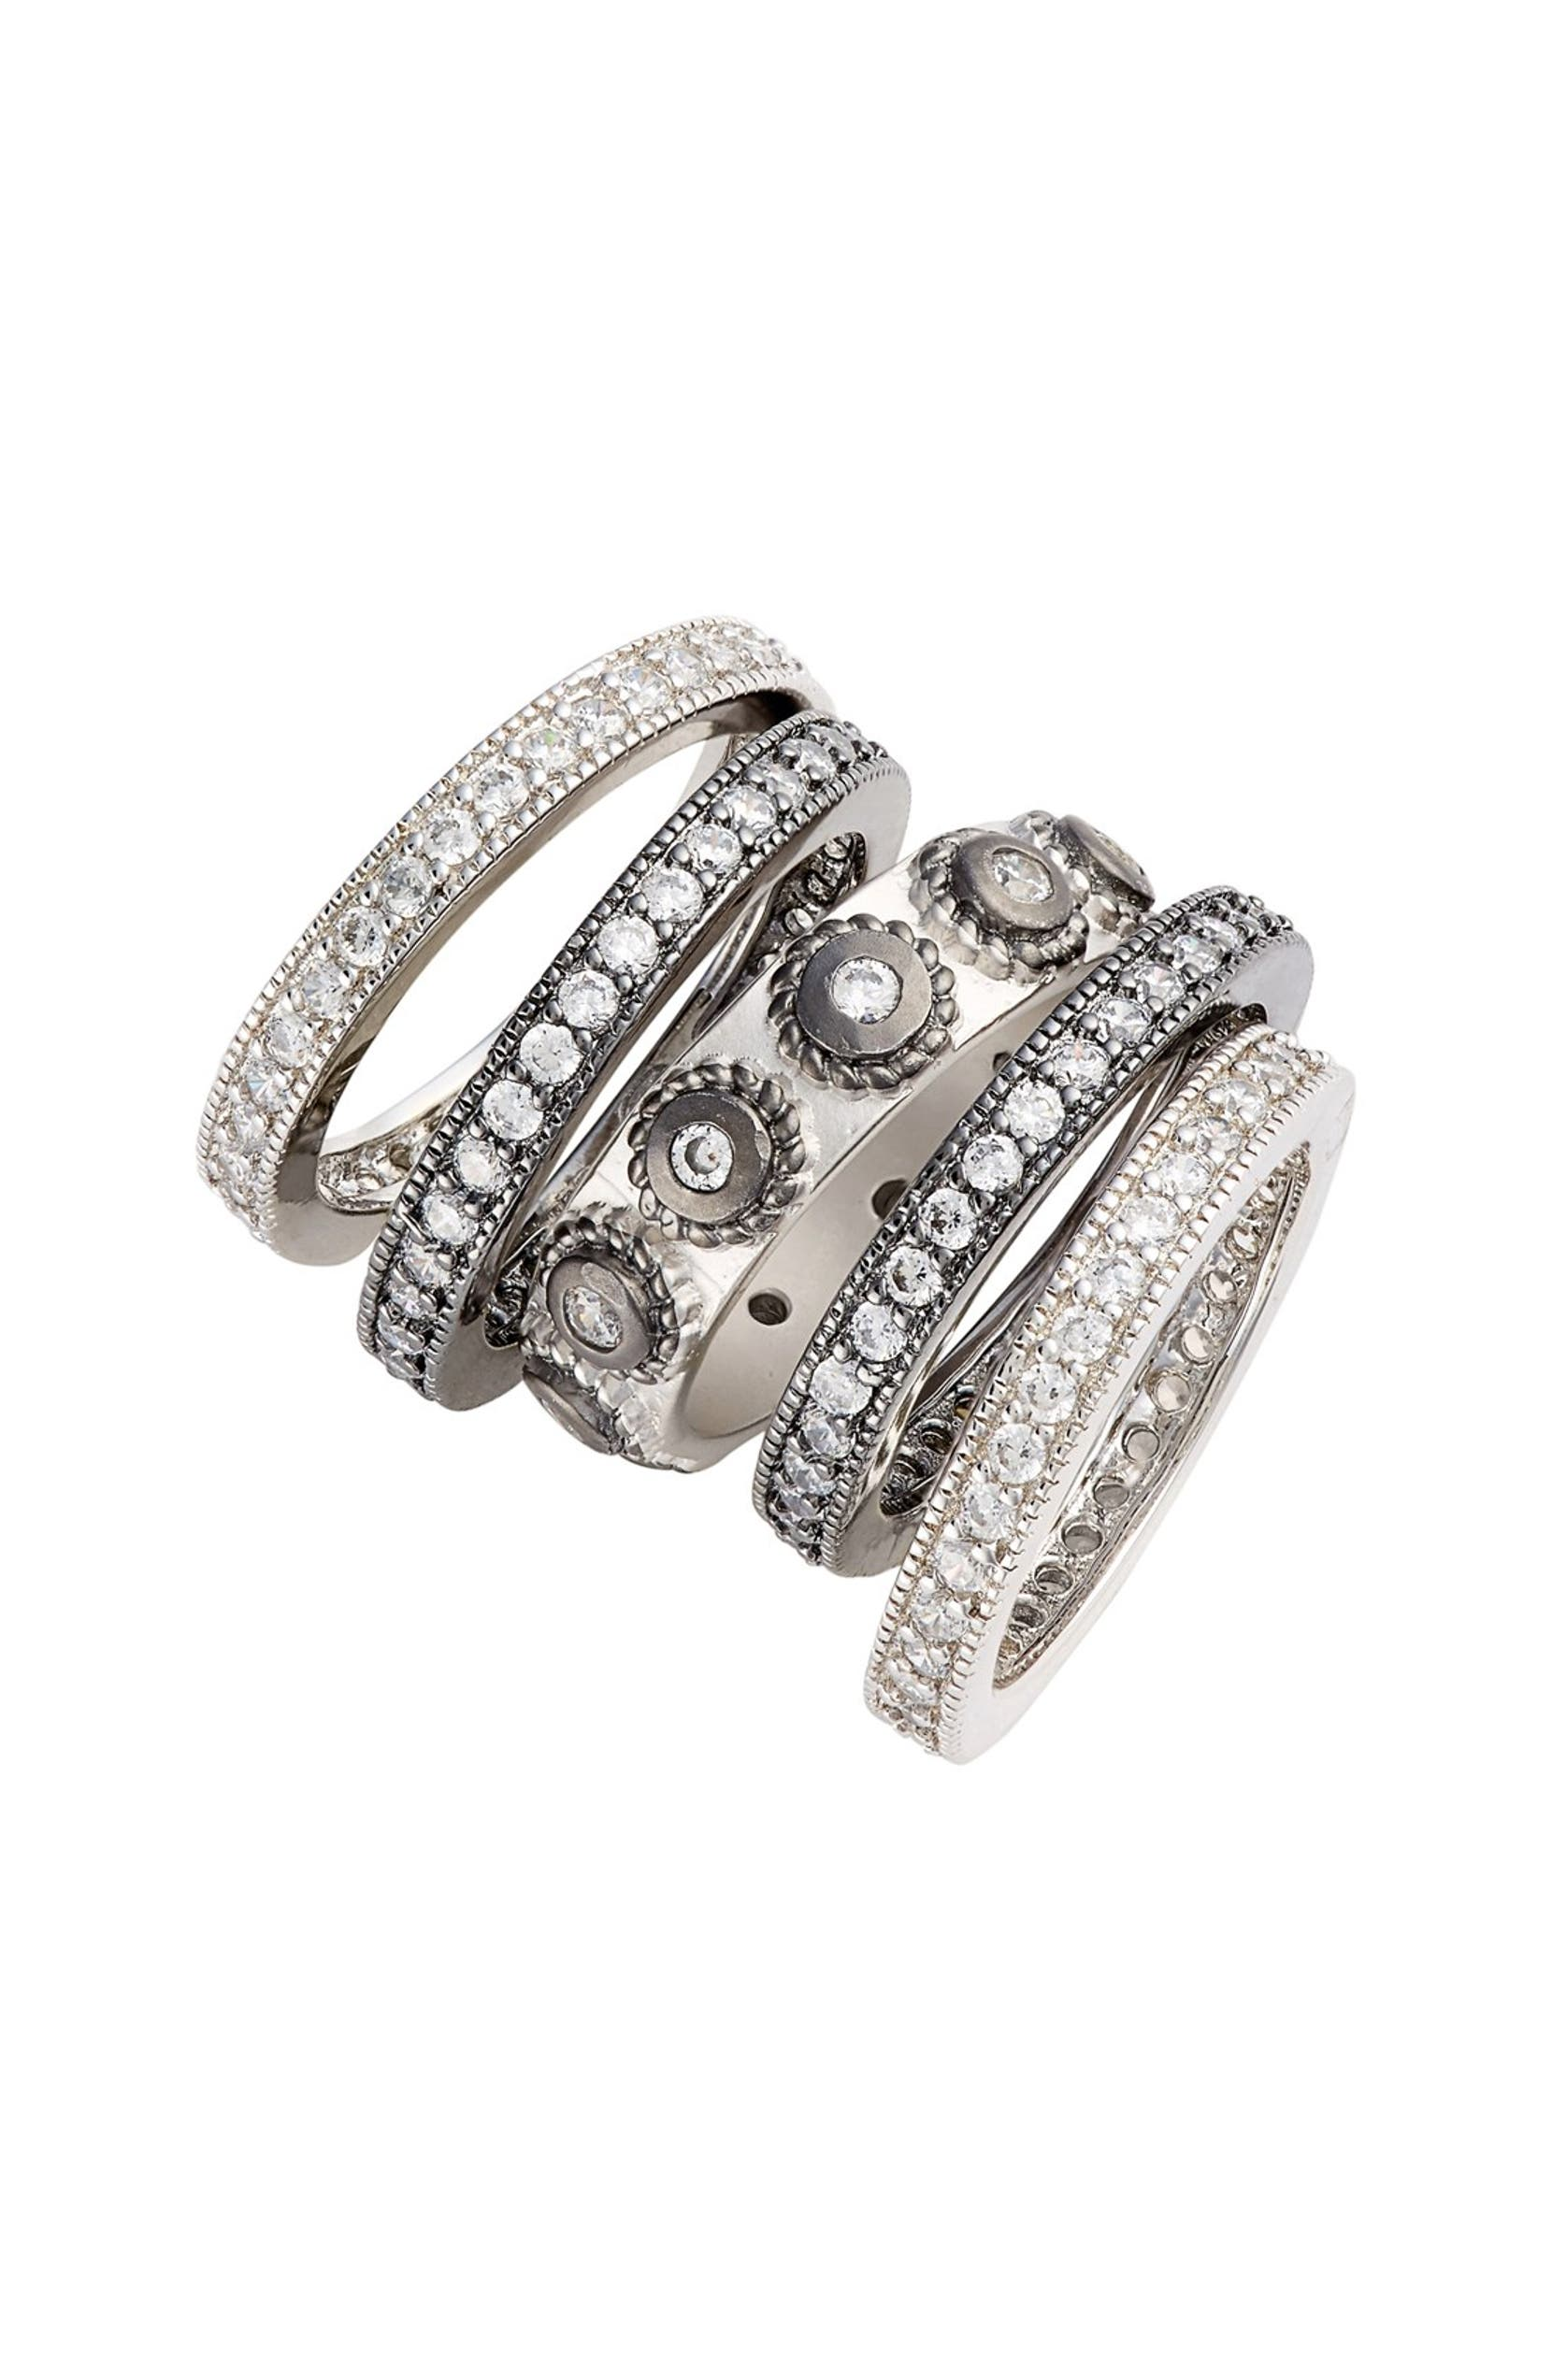 b006a917c1f72 'Contemporary Deco' Stacking Rings